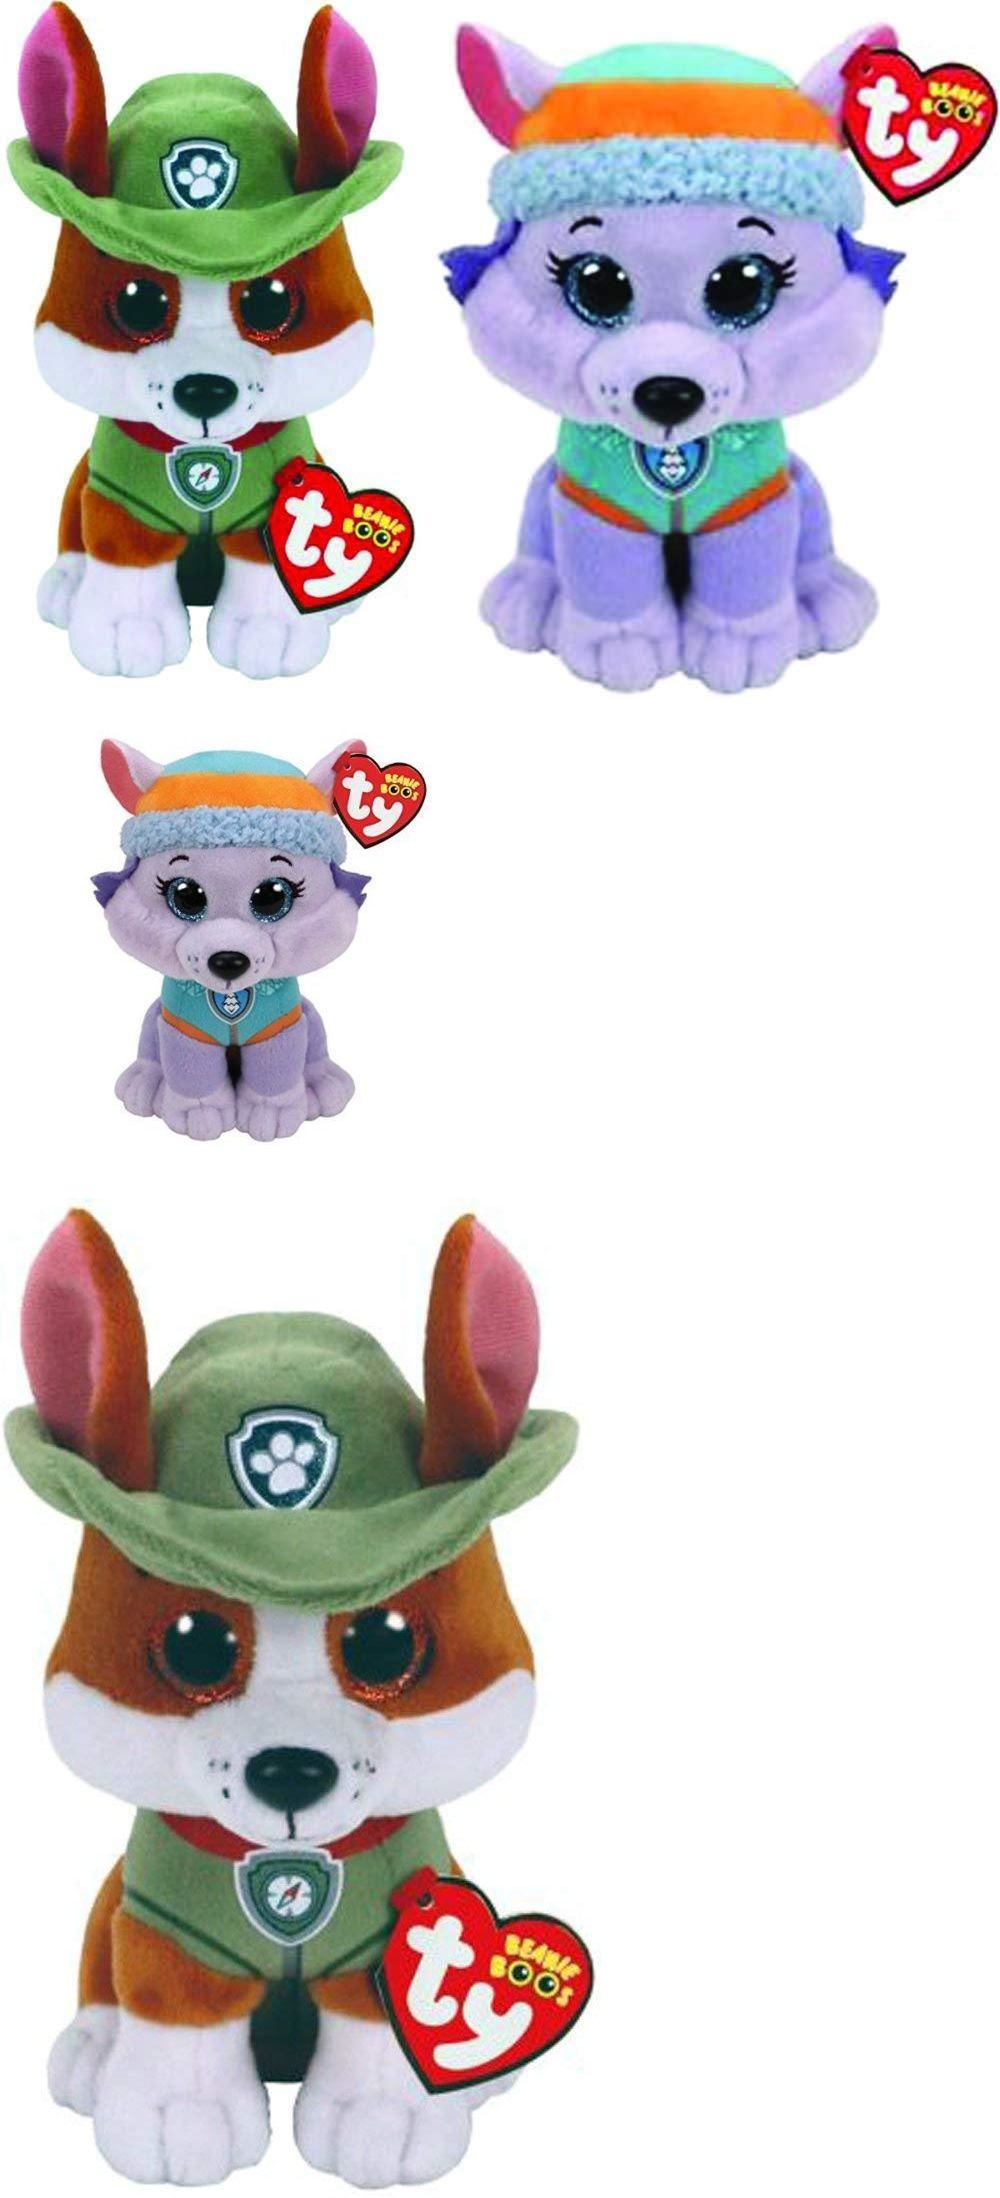 77d2d762b1f Beanie Babies 2 0 165958  Ty Beanie Baby Boo 6 Paw Patrol Everest Husky And Tracker  Chihuahua Dog Plush Set -  BUY IT NOW ONLY   17.9 on eBay!